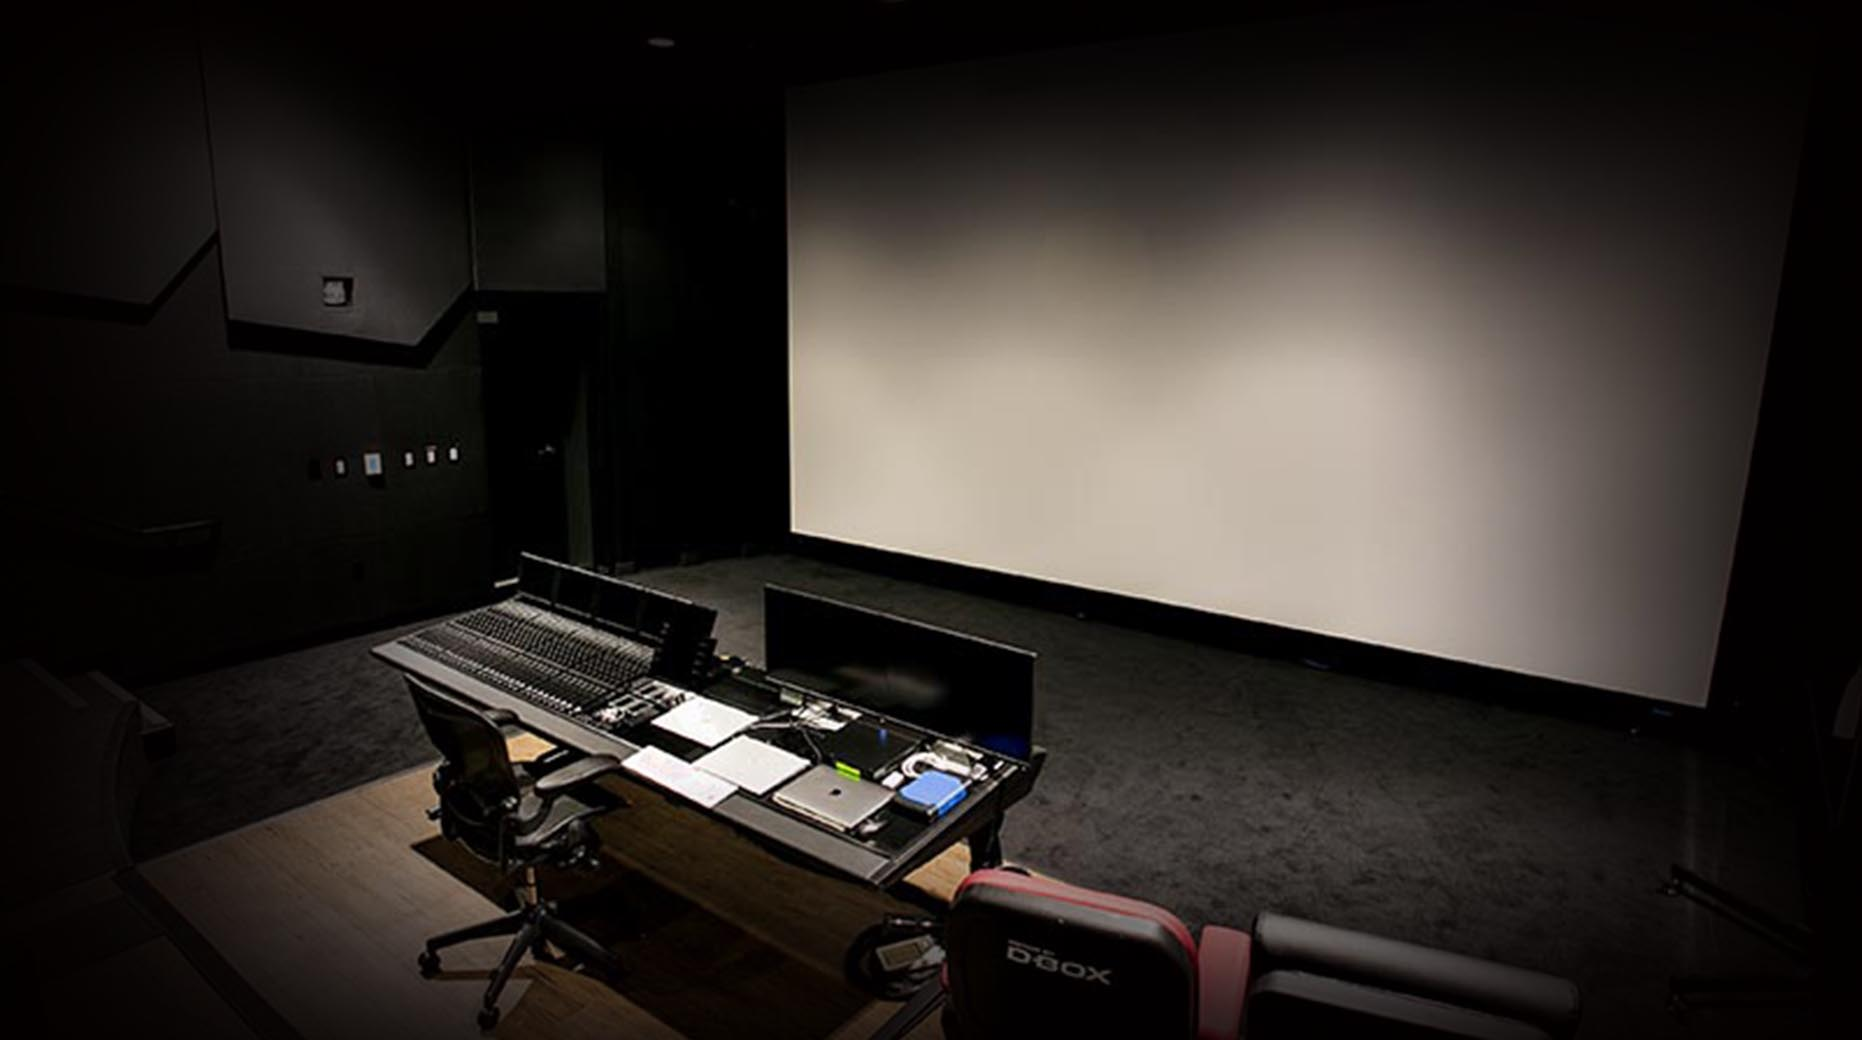 Image of Dolby Atmos and Pro Tools workstation in front of large theatre screen